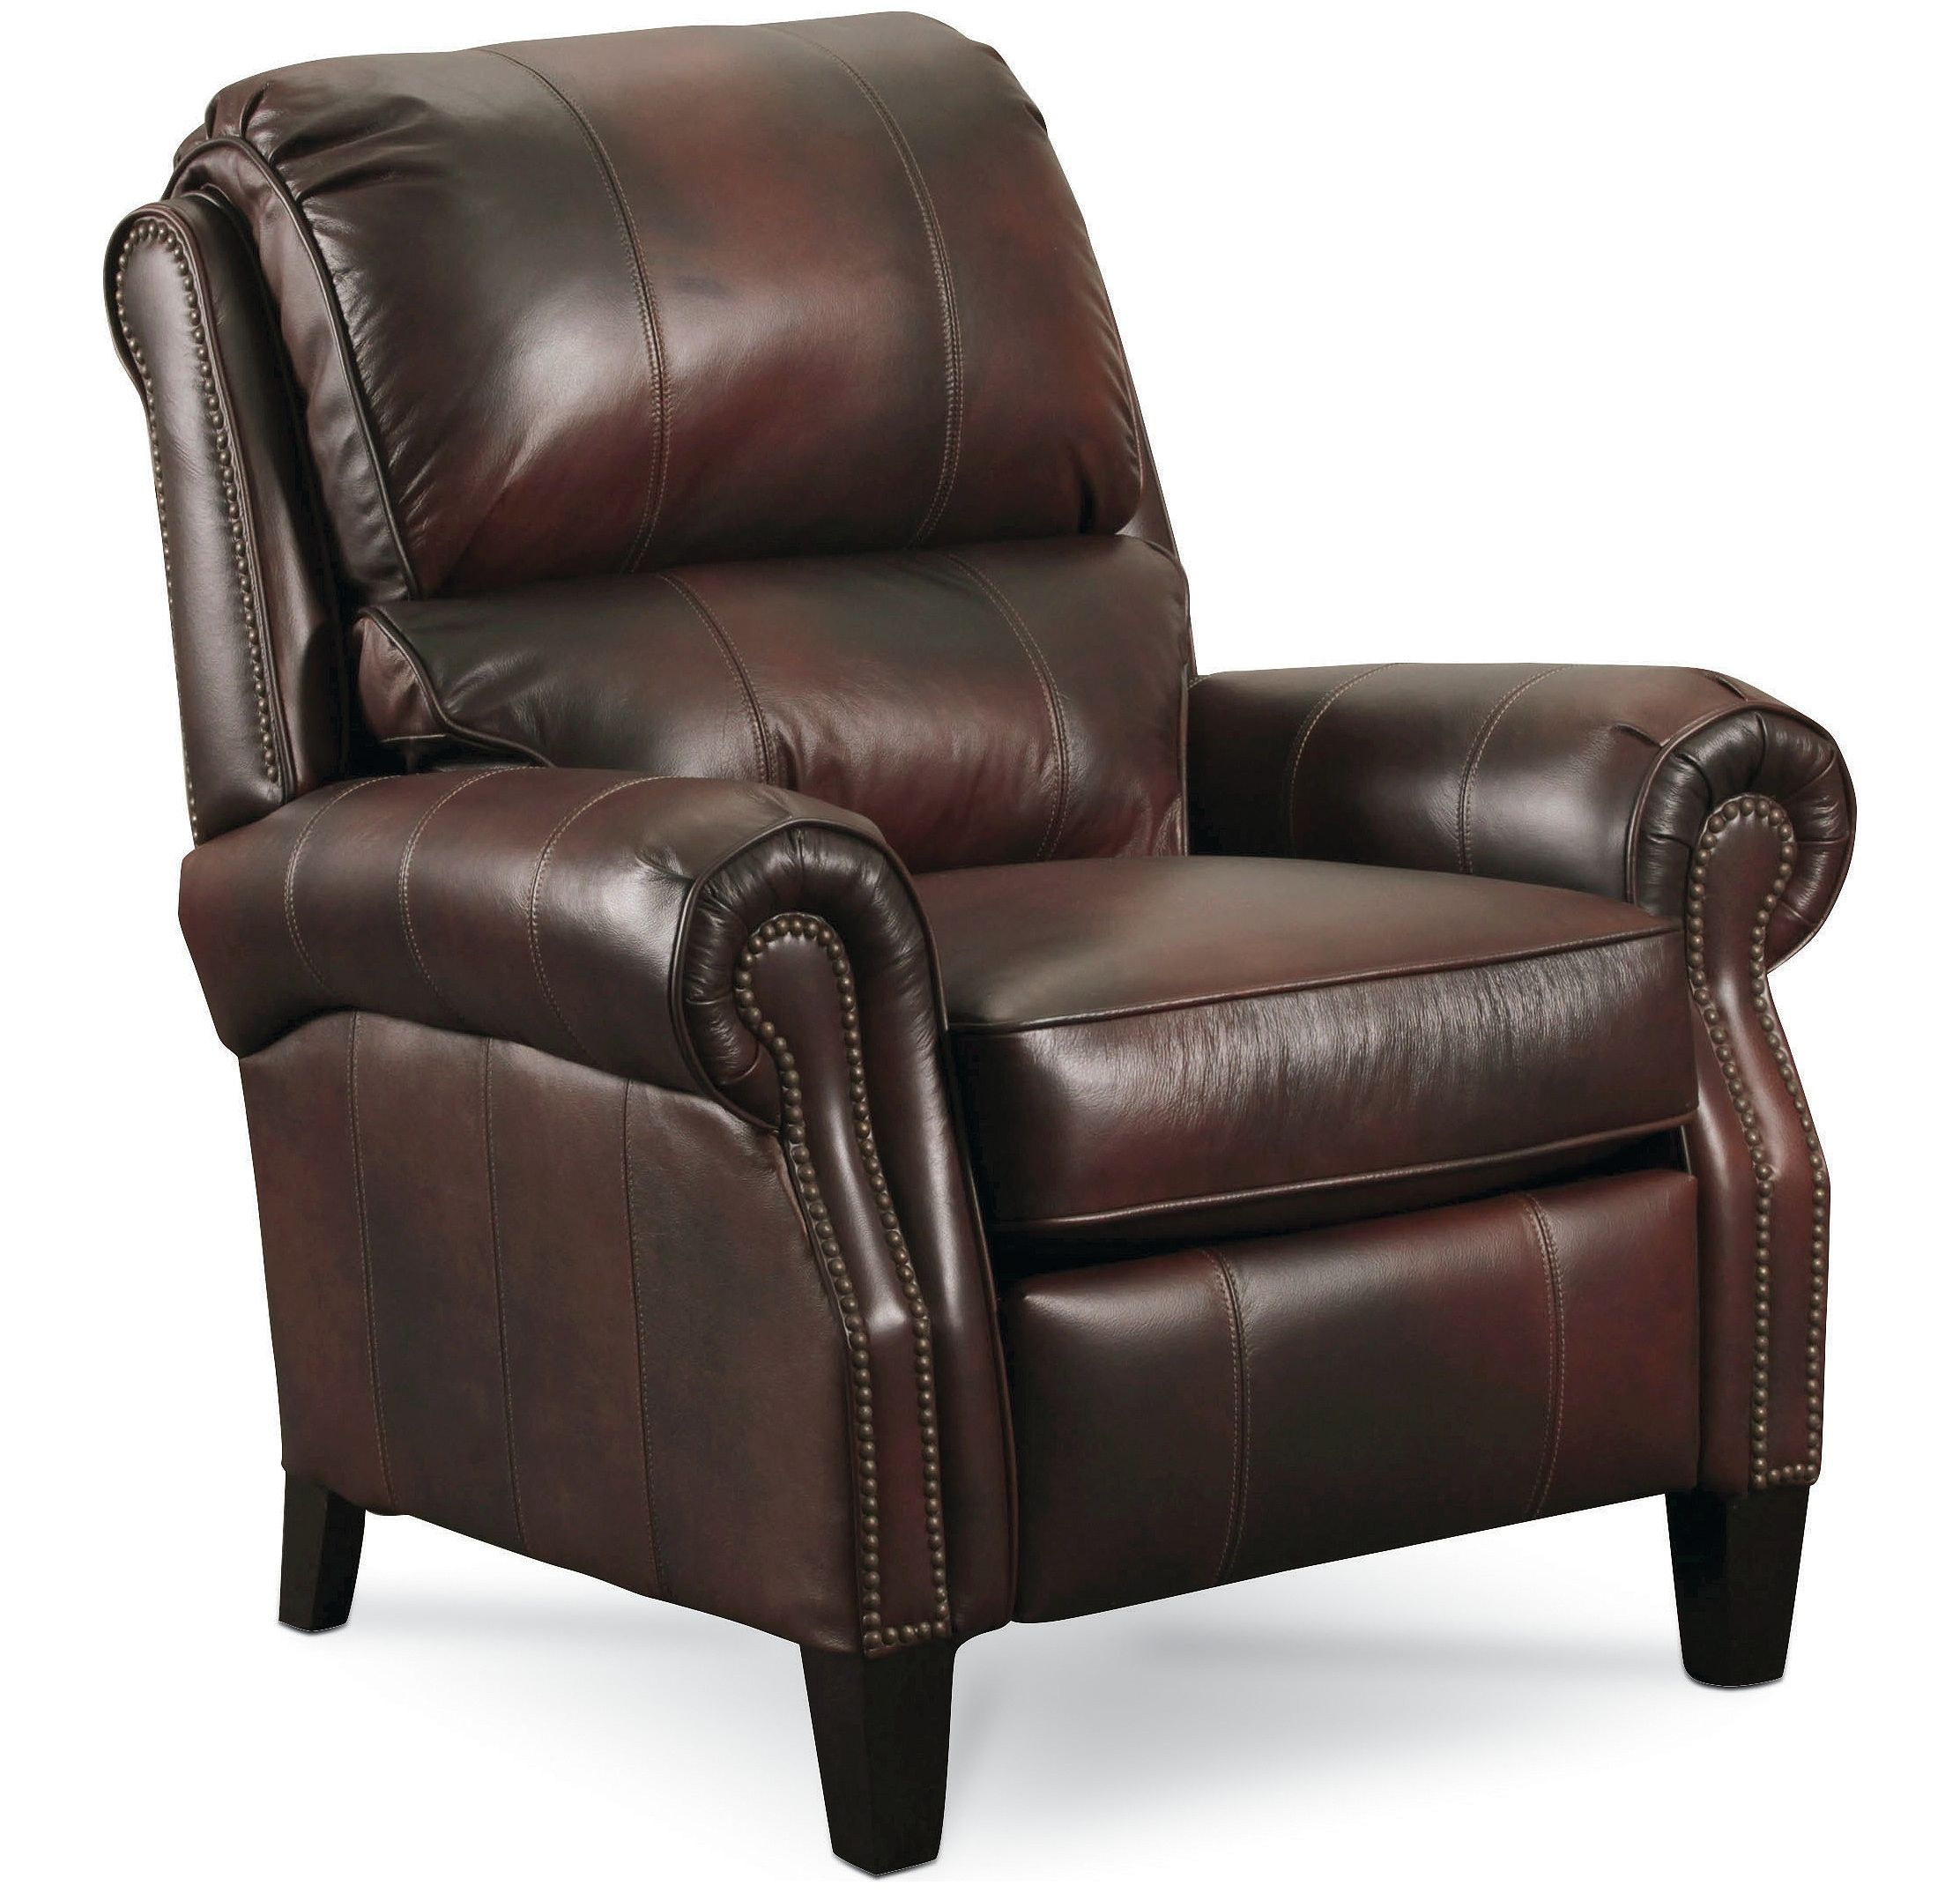 Lane Hogan High Leg Leather Recliner - Dark Brown (curbside delivery)